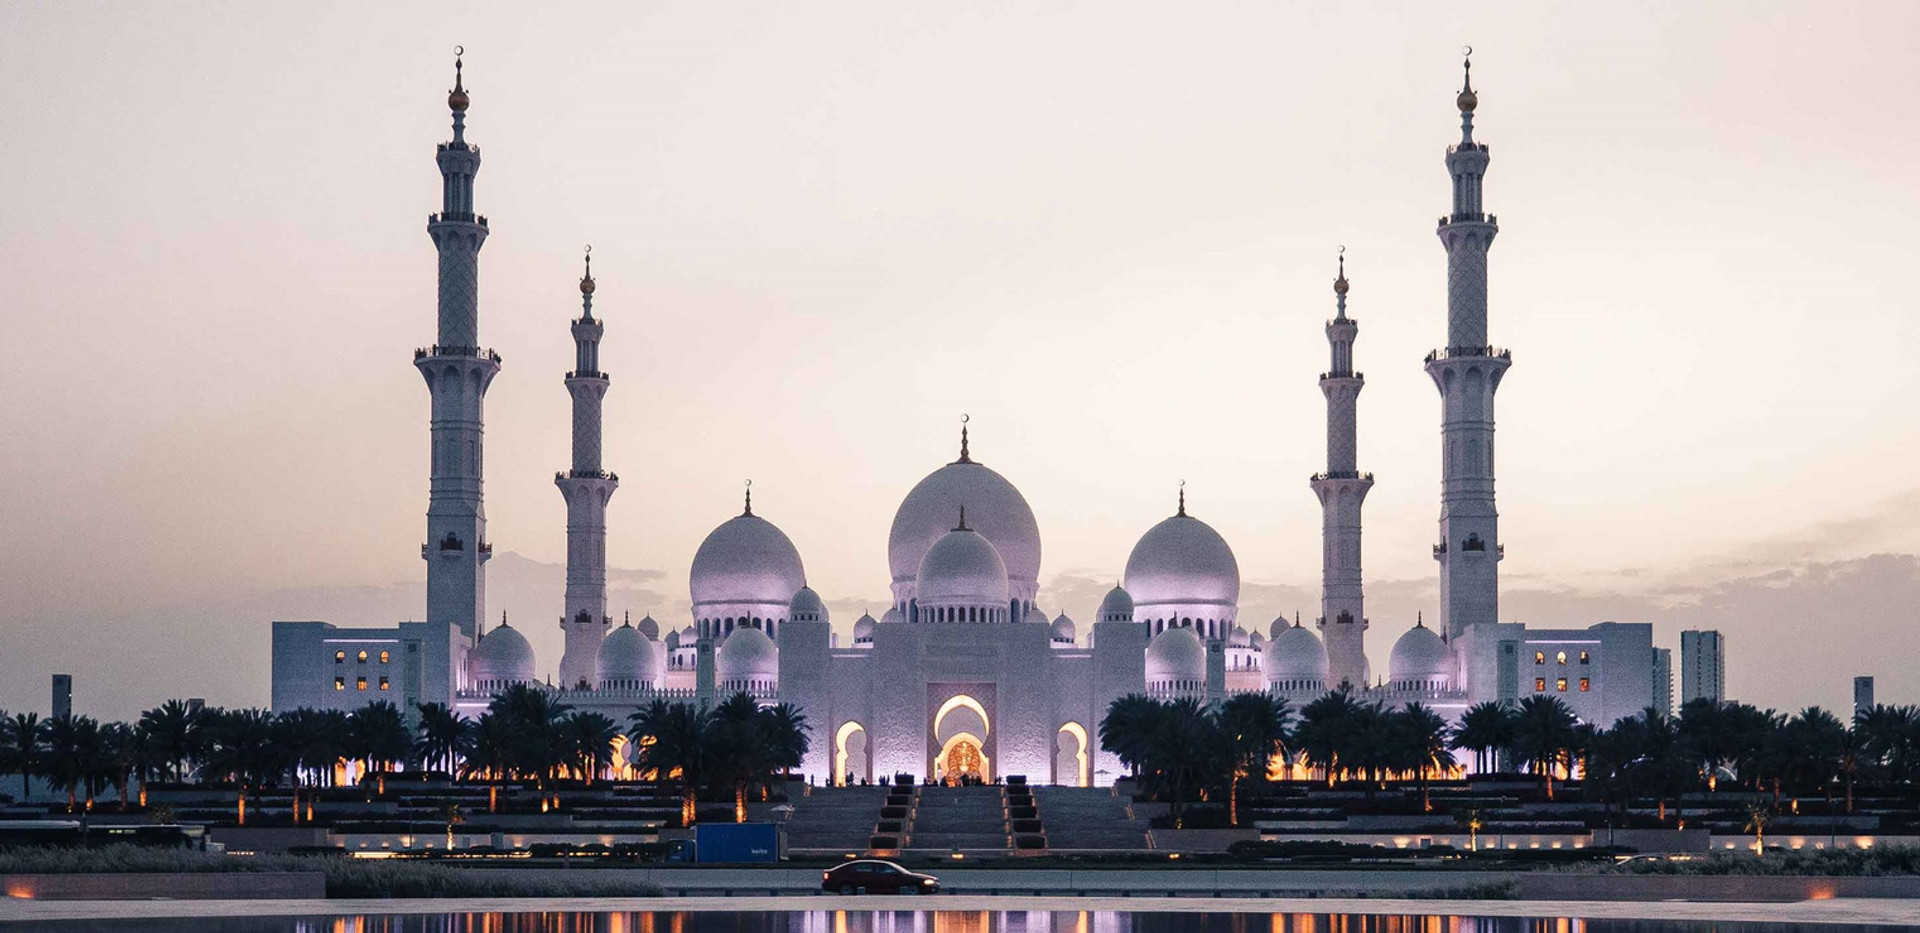 shk zayed grand mosque